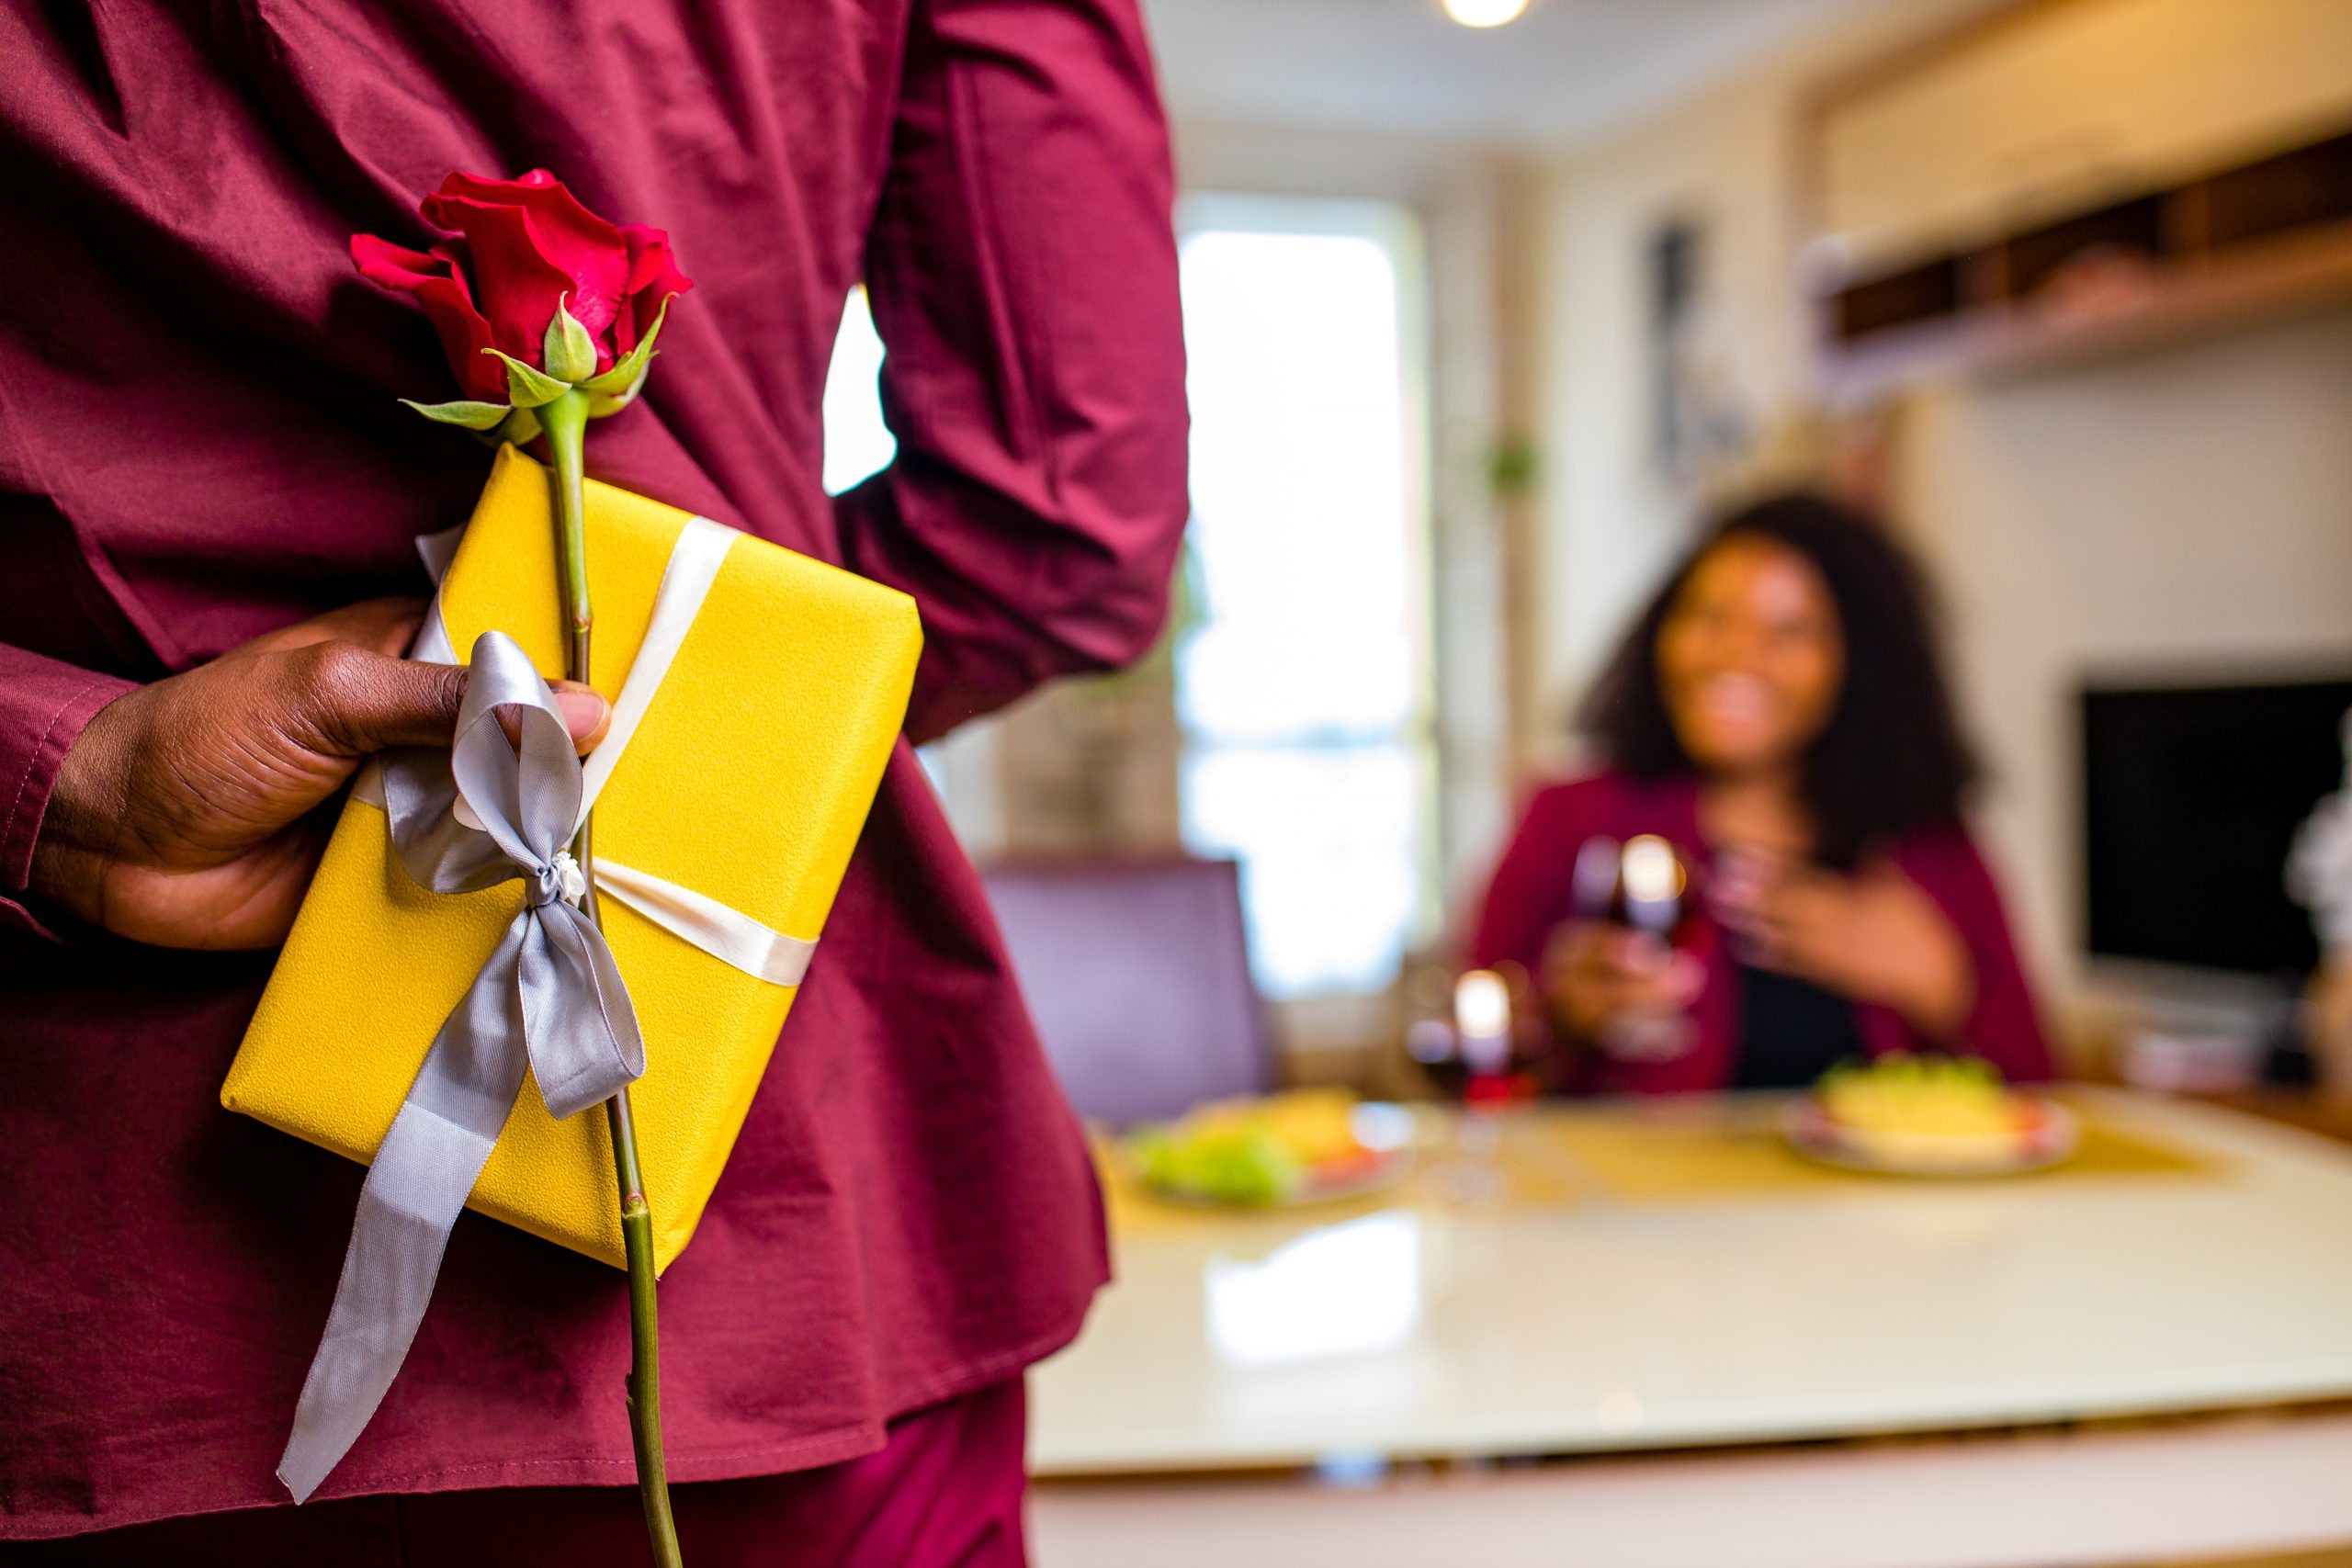 An African man hides behind his back the Valentine's gifts he is about to give his wife.